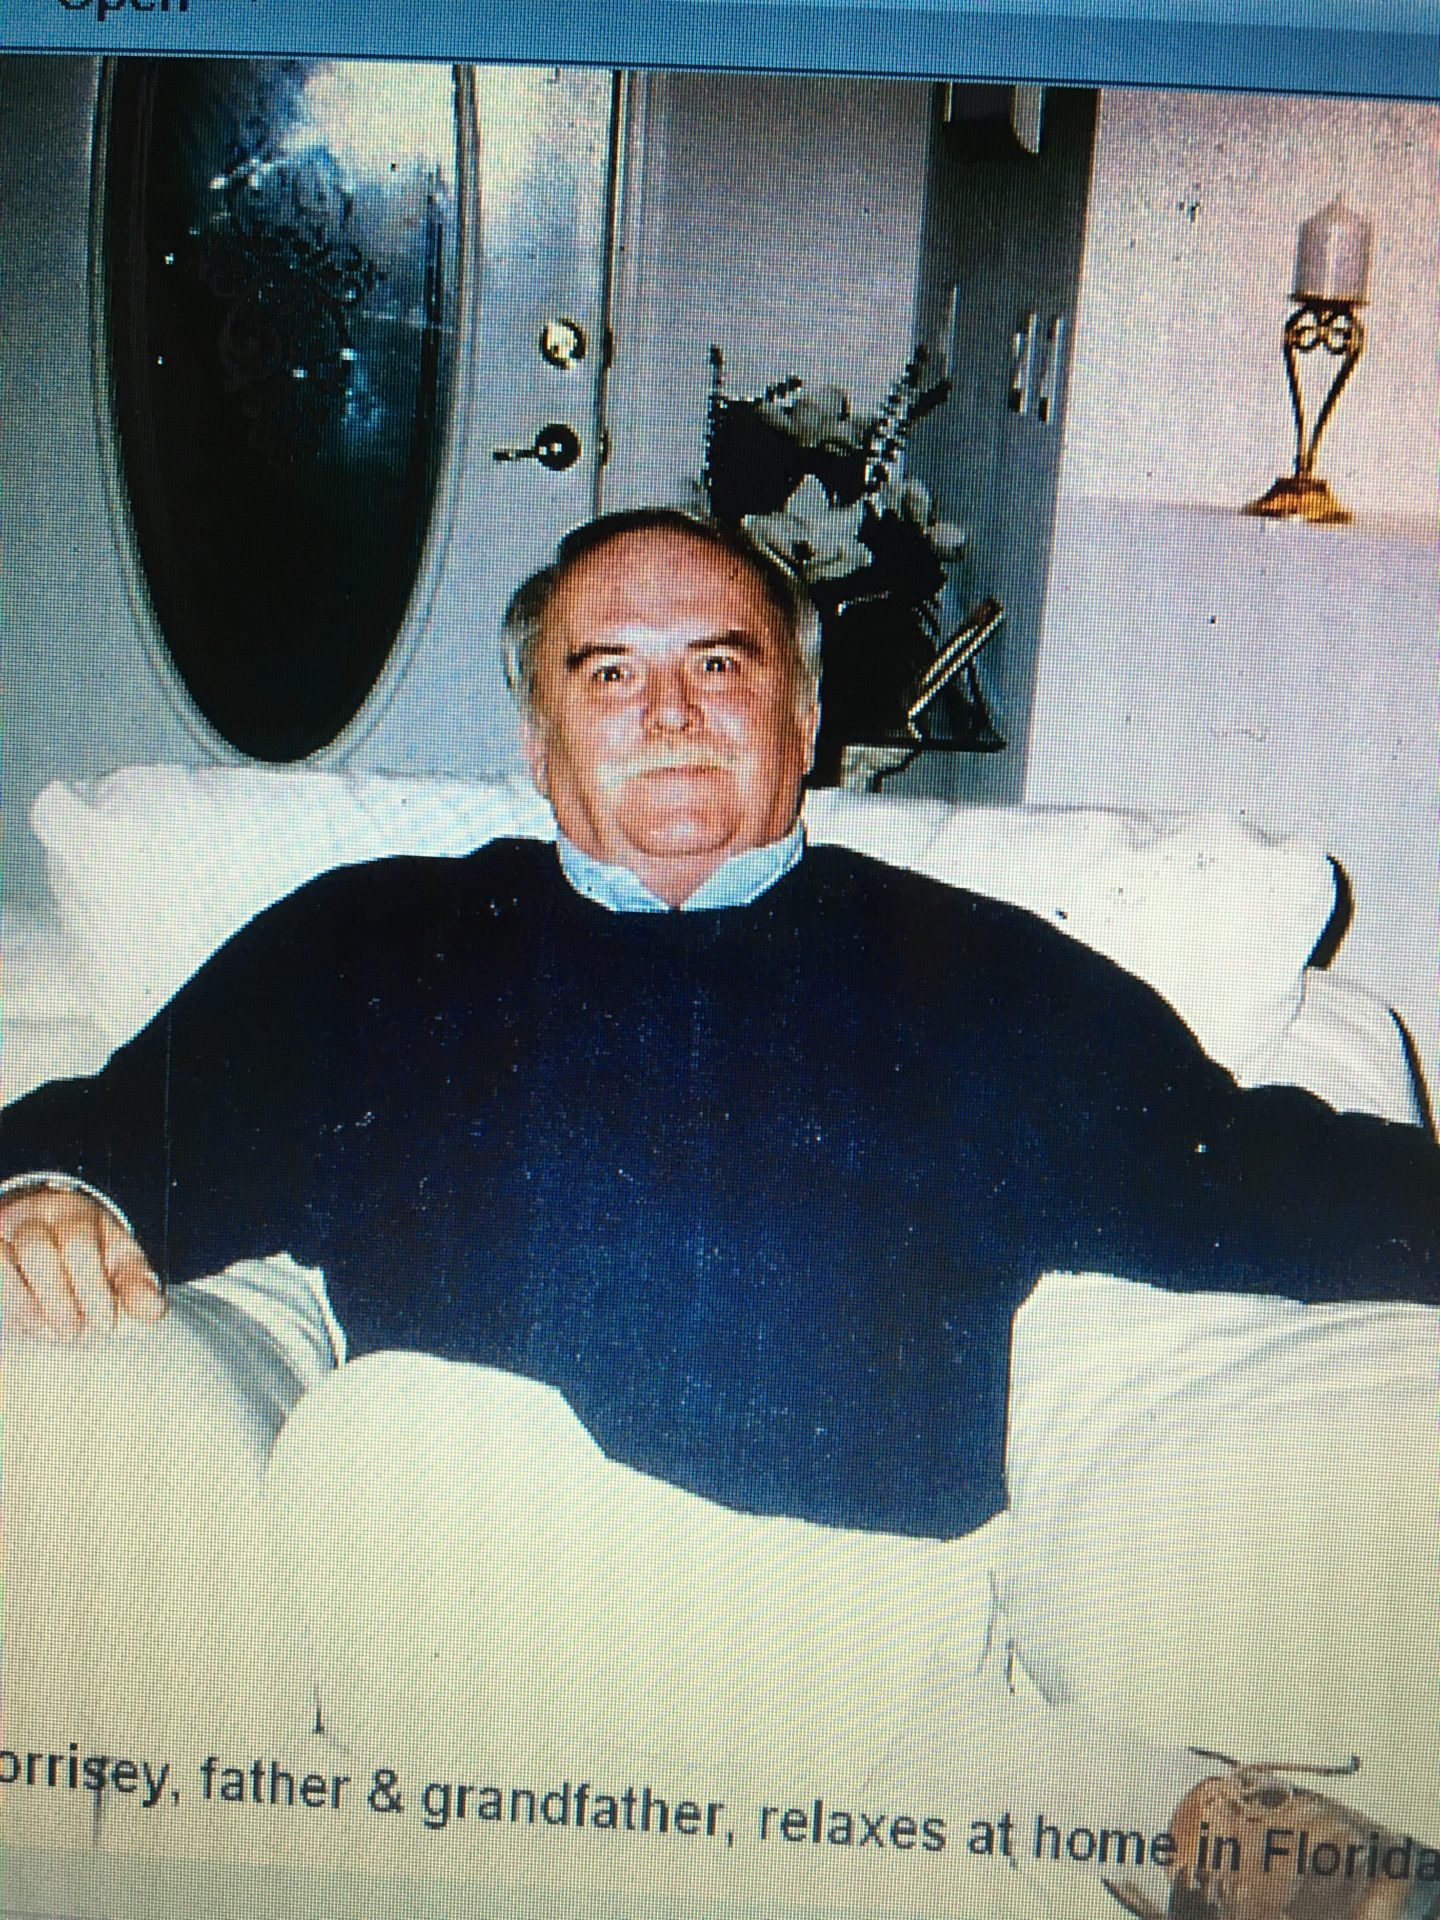 John relaxing at home<br /> Love you